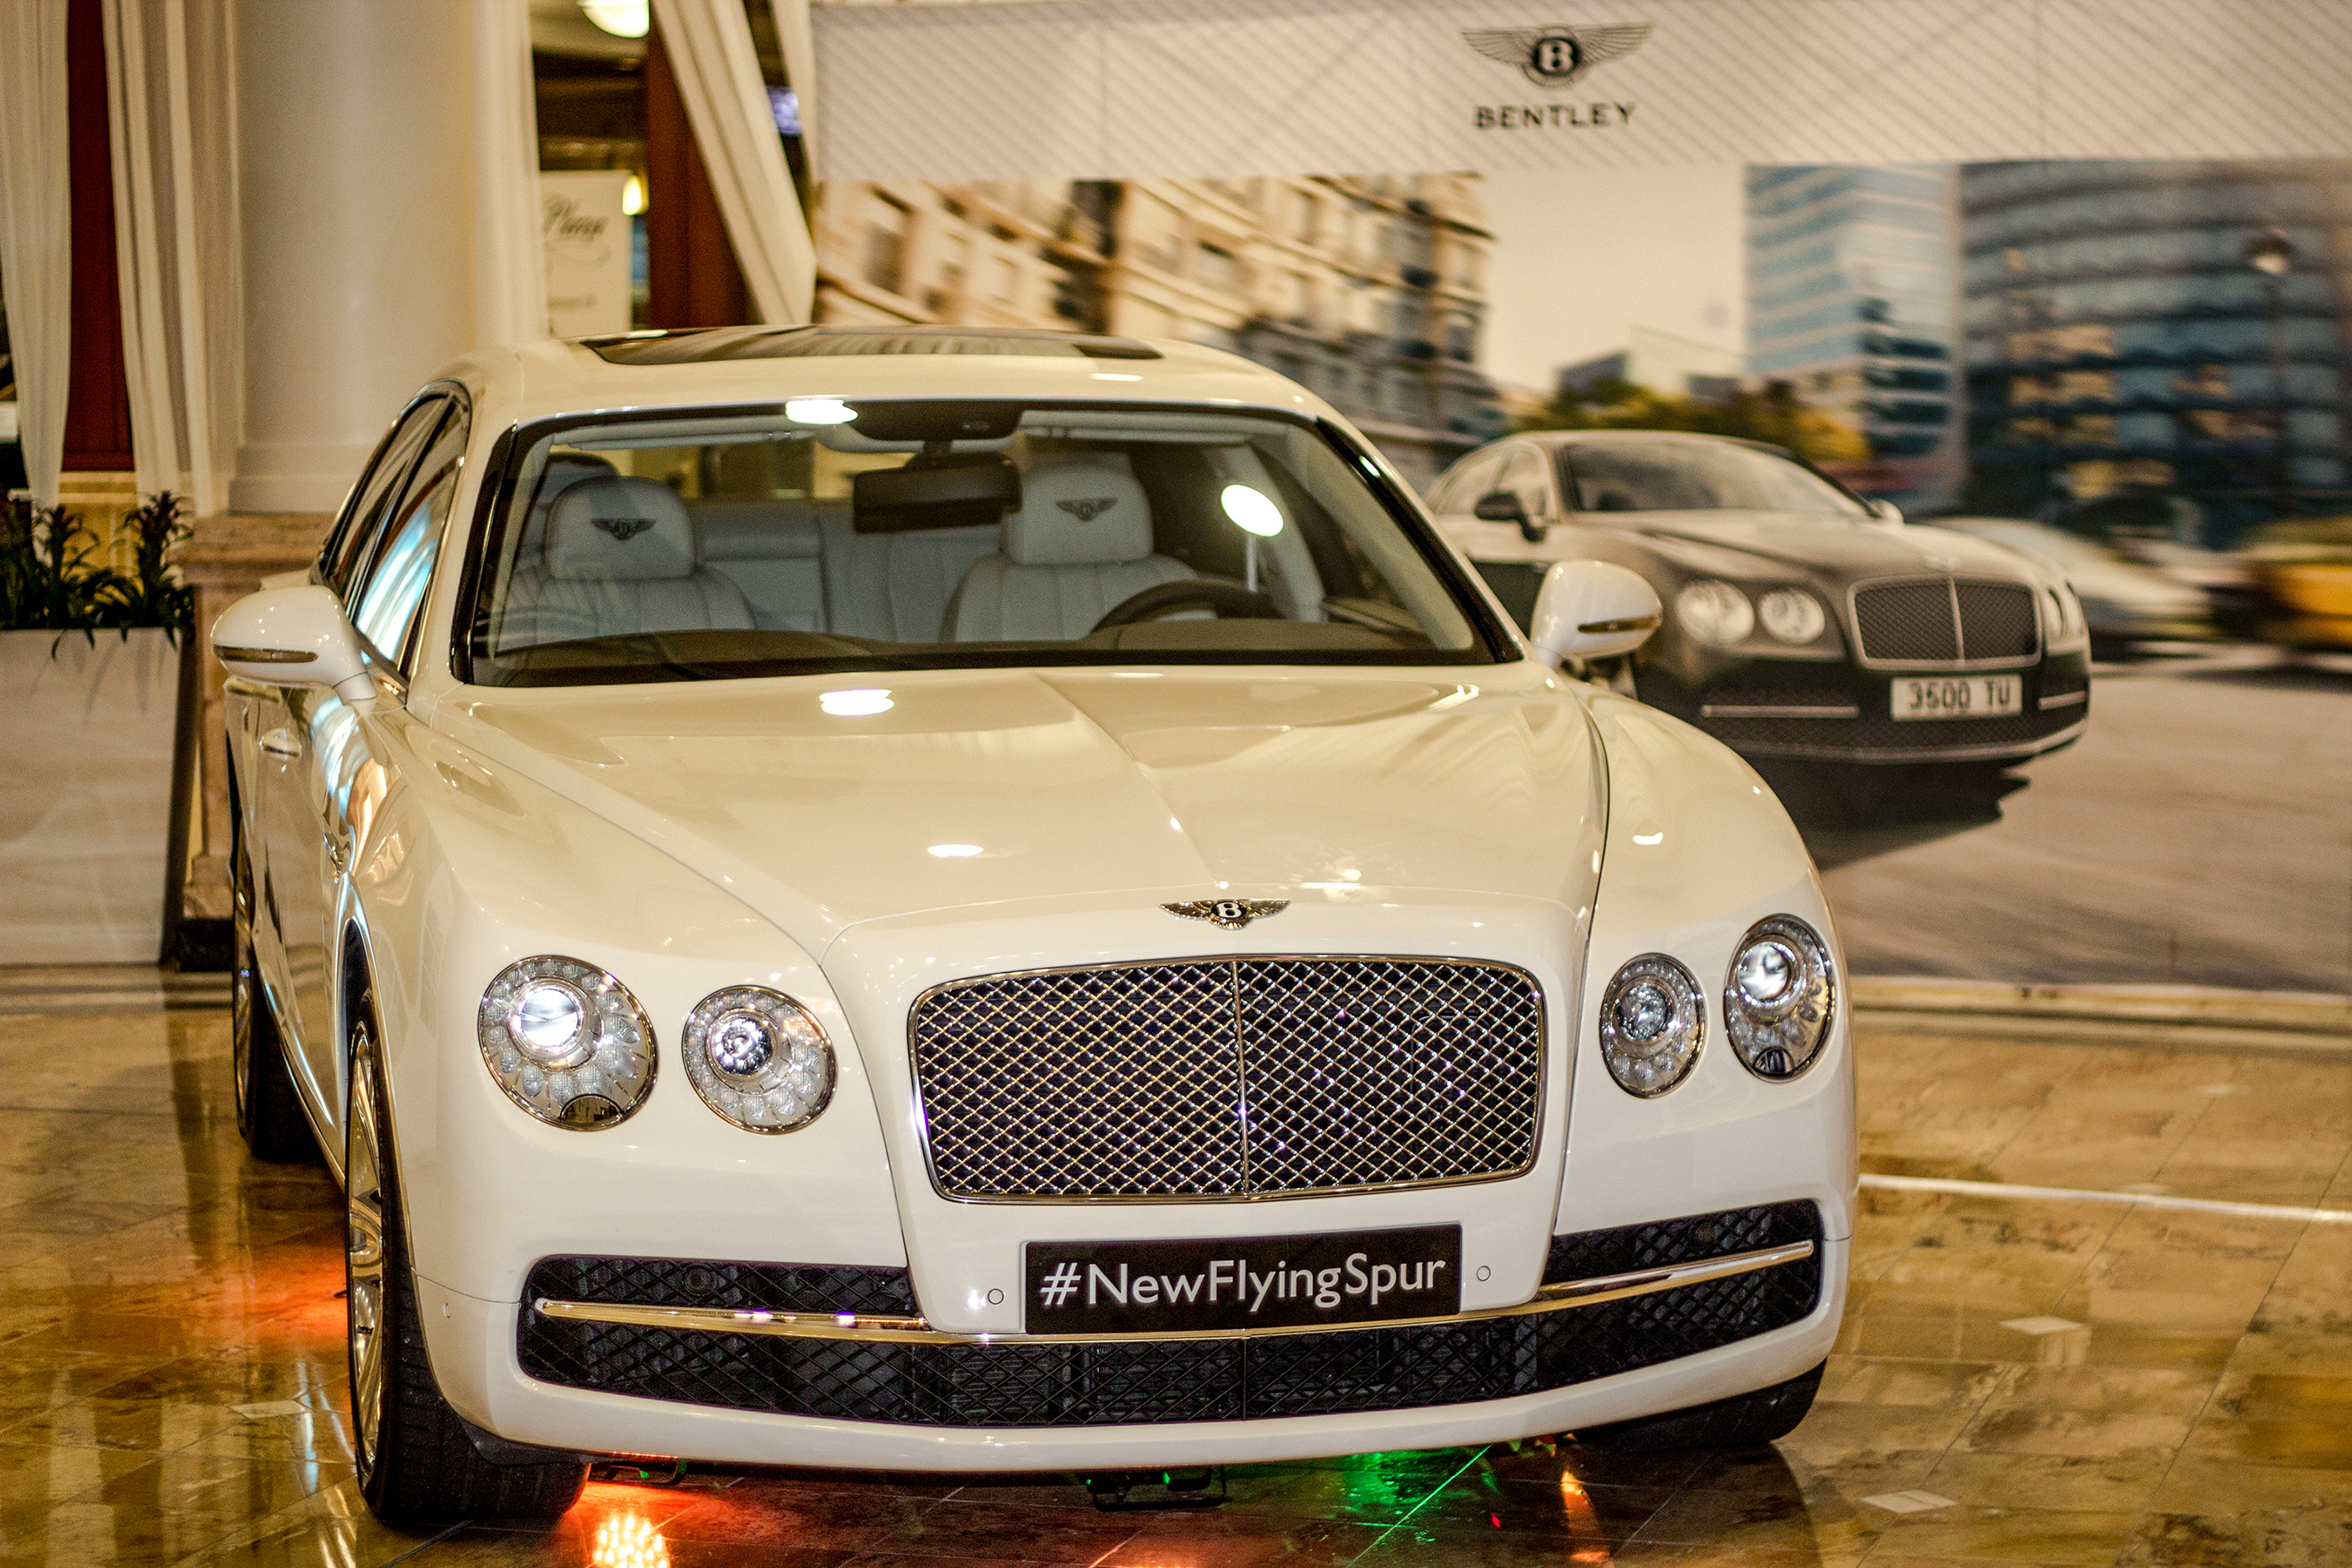 Breitling For Bentley >> Bentley debuts the 2014 Flying Spur at Phipps Plaza – THE ...